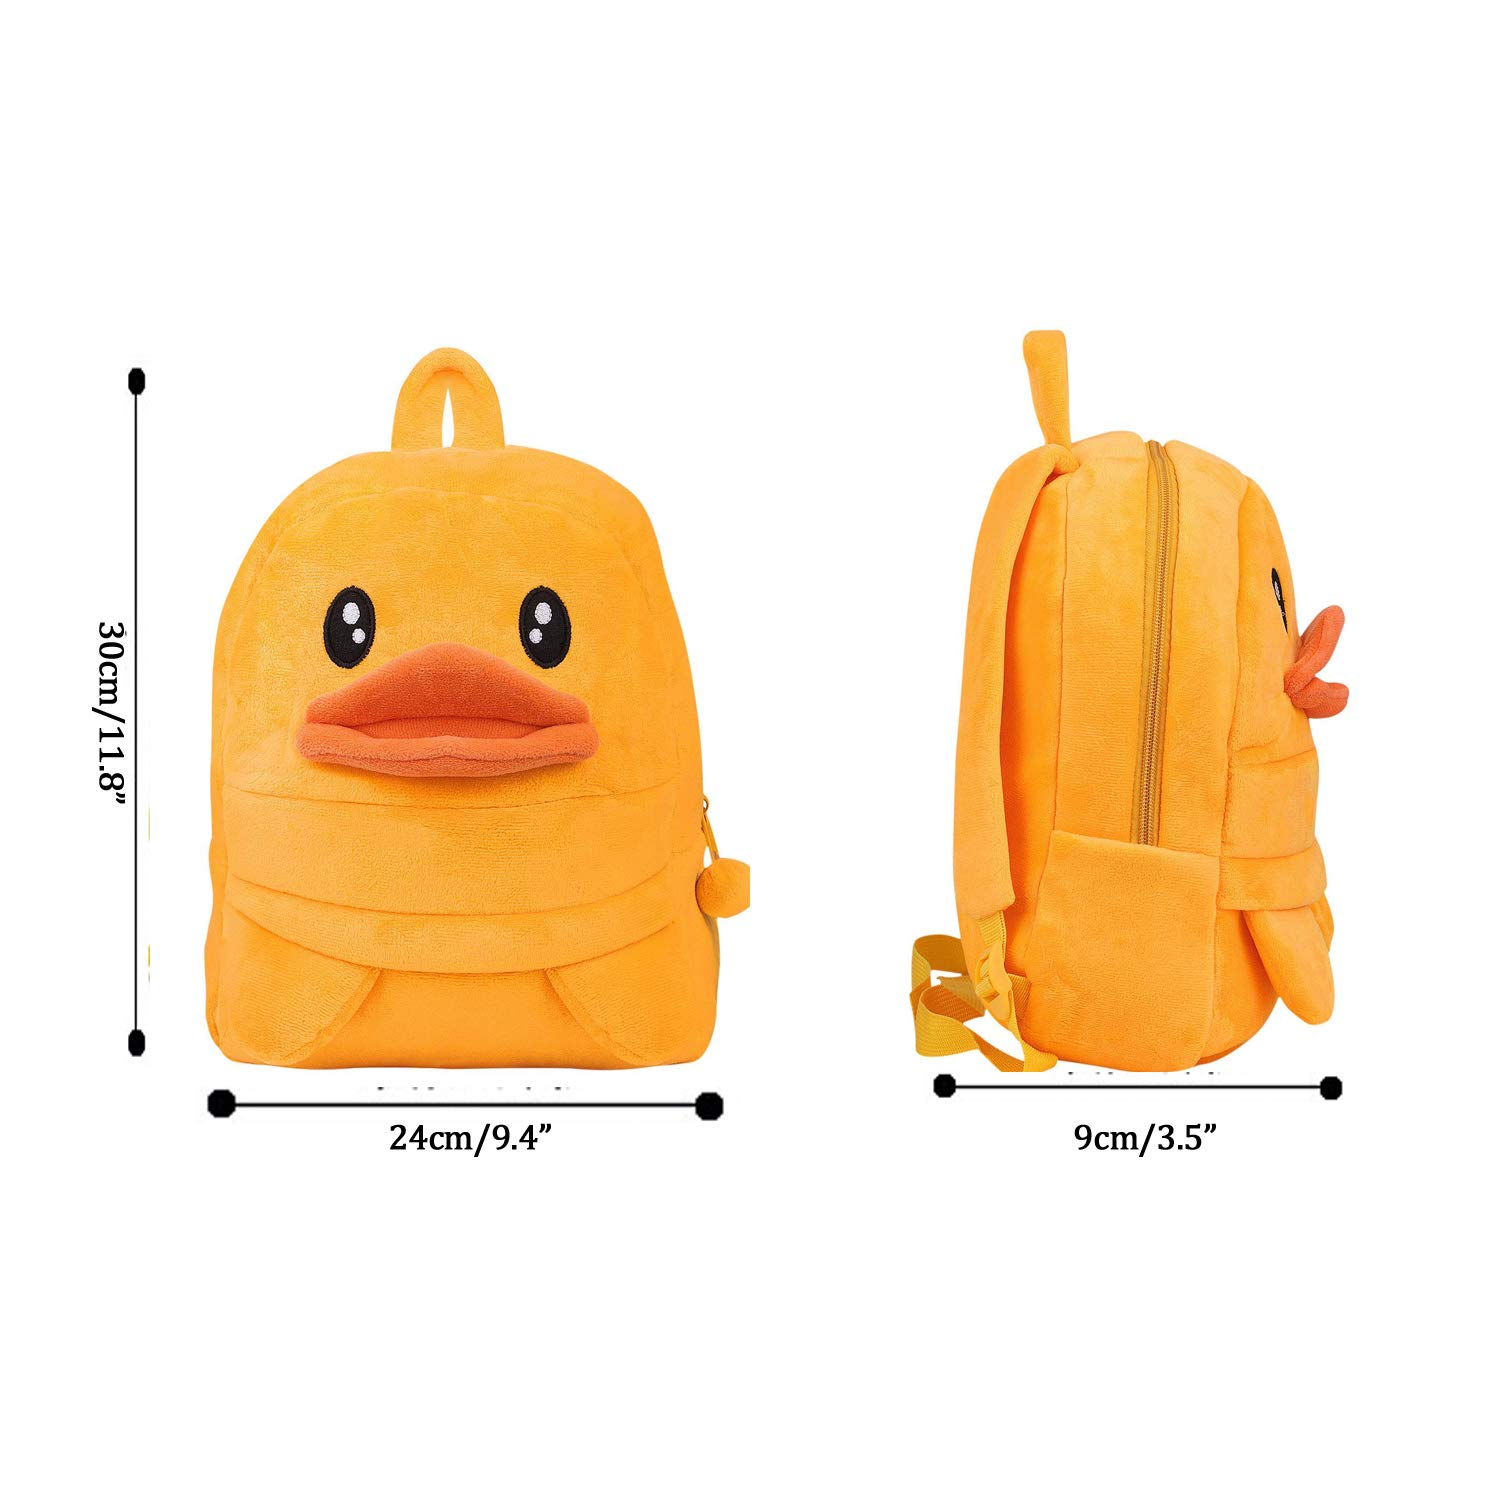 c9374c2060 Toddler Baby Yellow Duck Backpack Kids Cute Animal Cartoon Kindergarten  Schoolbag Mini Travel Bag Rucksack Strap Shoulder Bag for Boys Girls Ages 3  to 4  ...